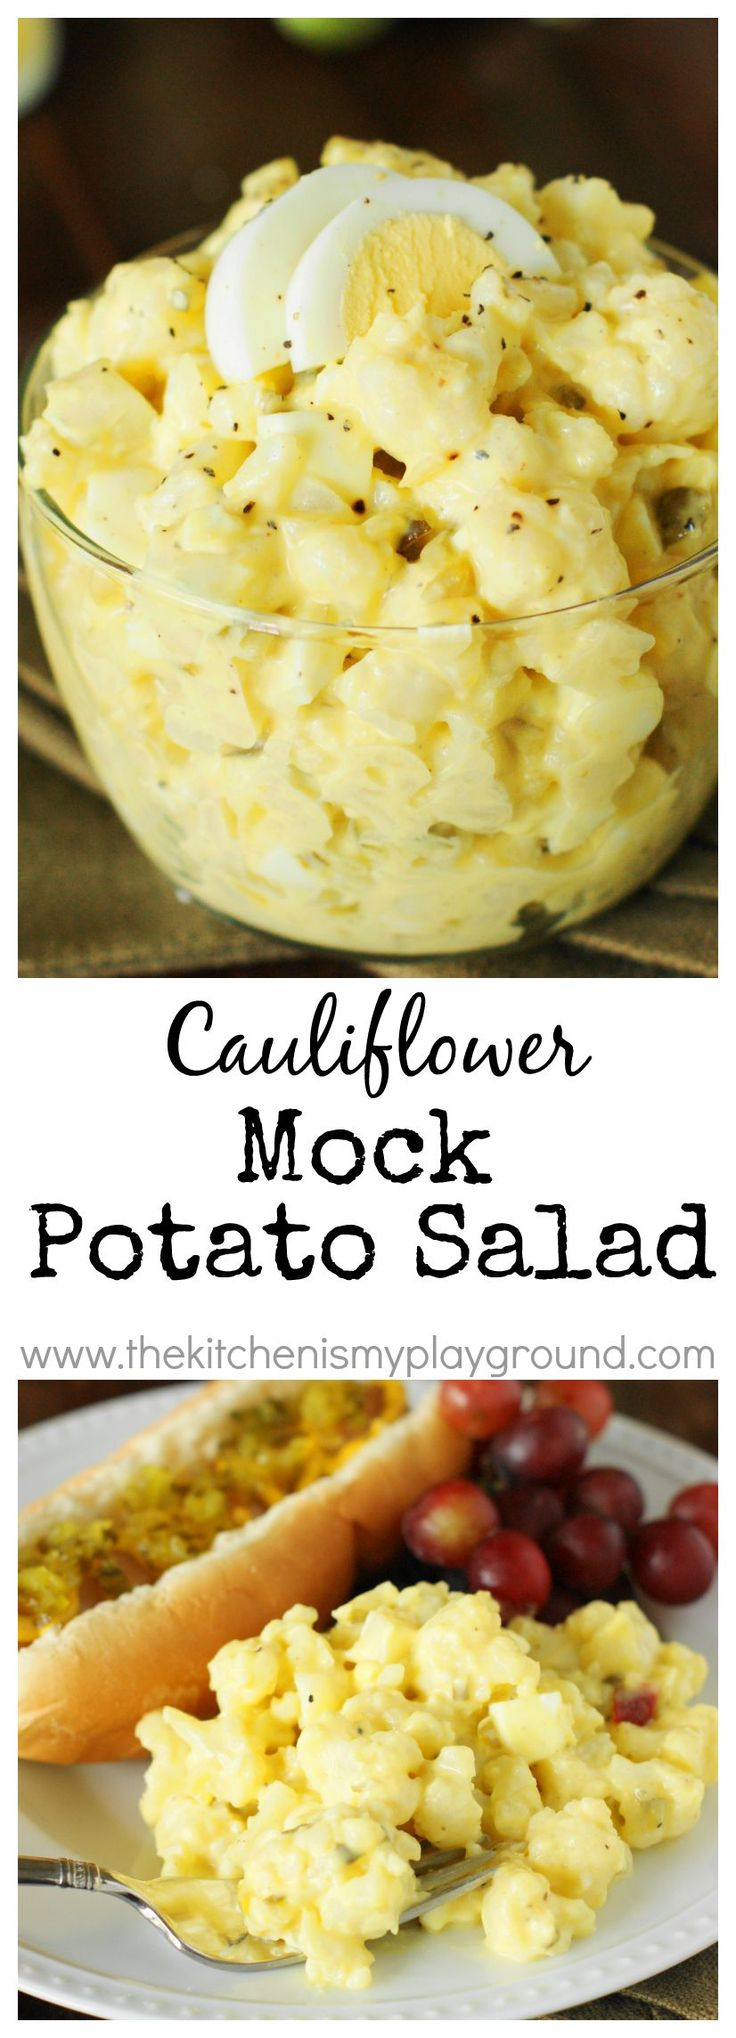 Cauliflower Mock Potato Salad ~ a full-of-flavor lower-carb version of our beloved potato salad! www.thekitchenismyplayground.com: